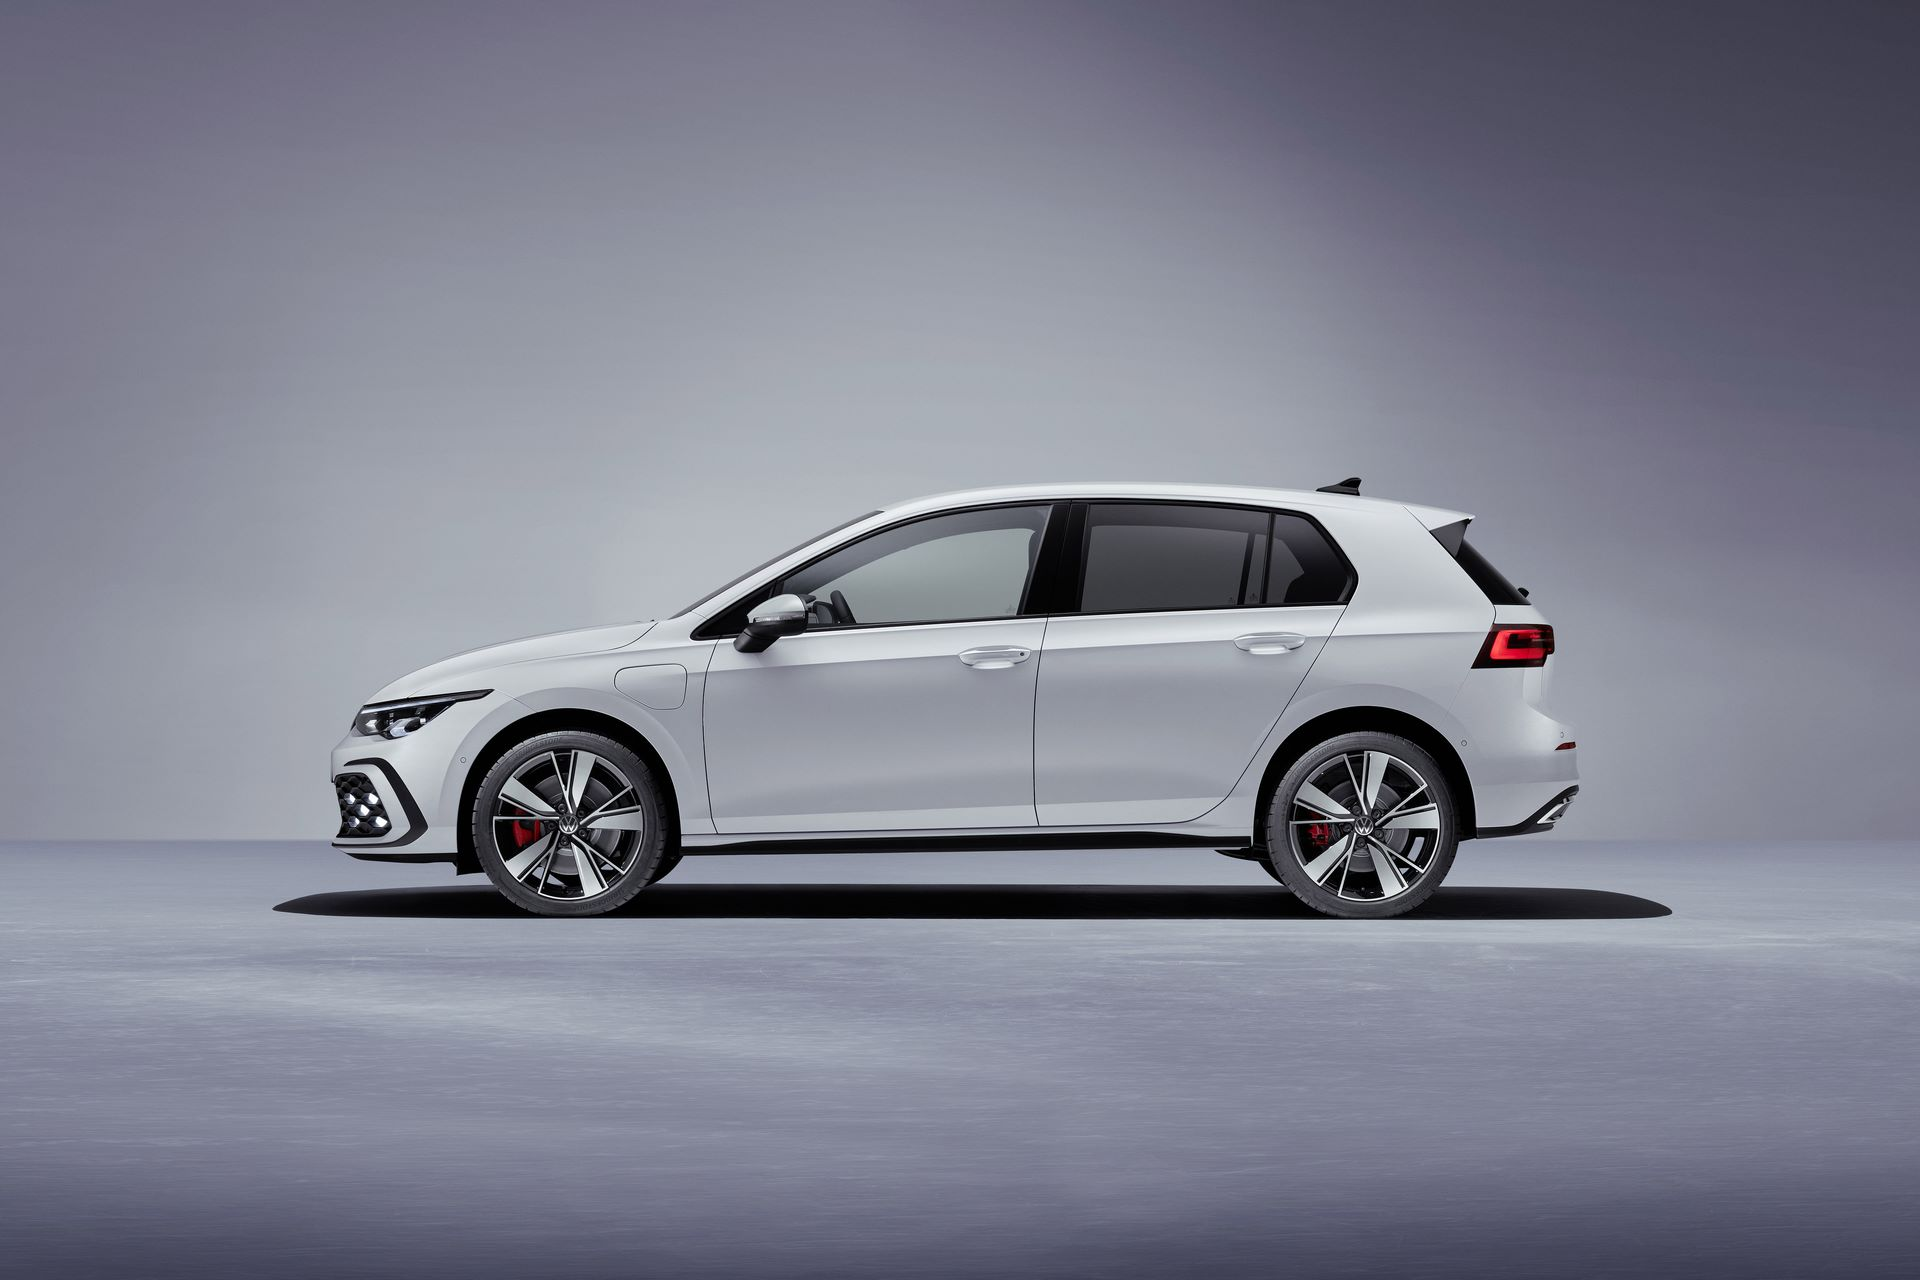 The new Volkswagen Golf GTE